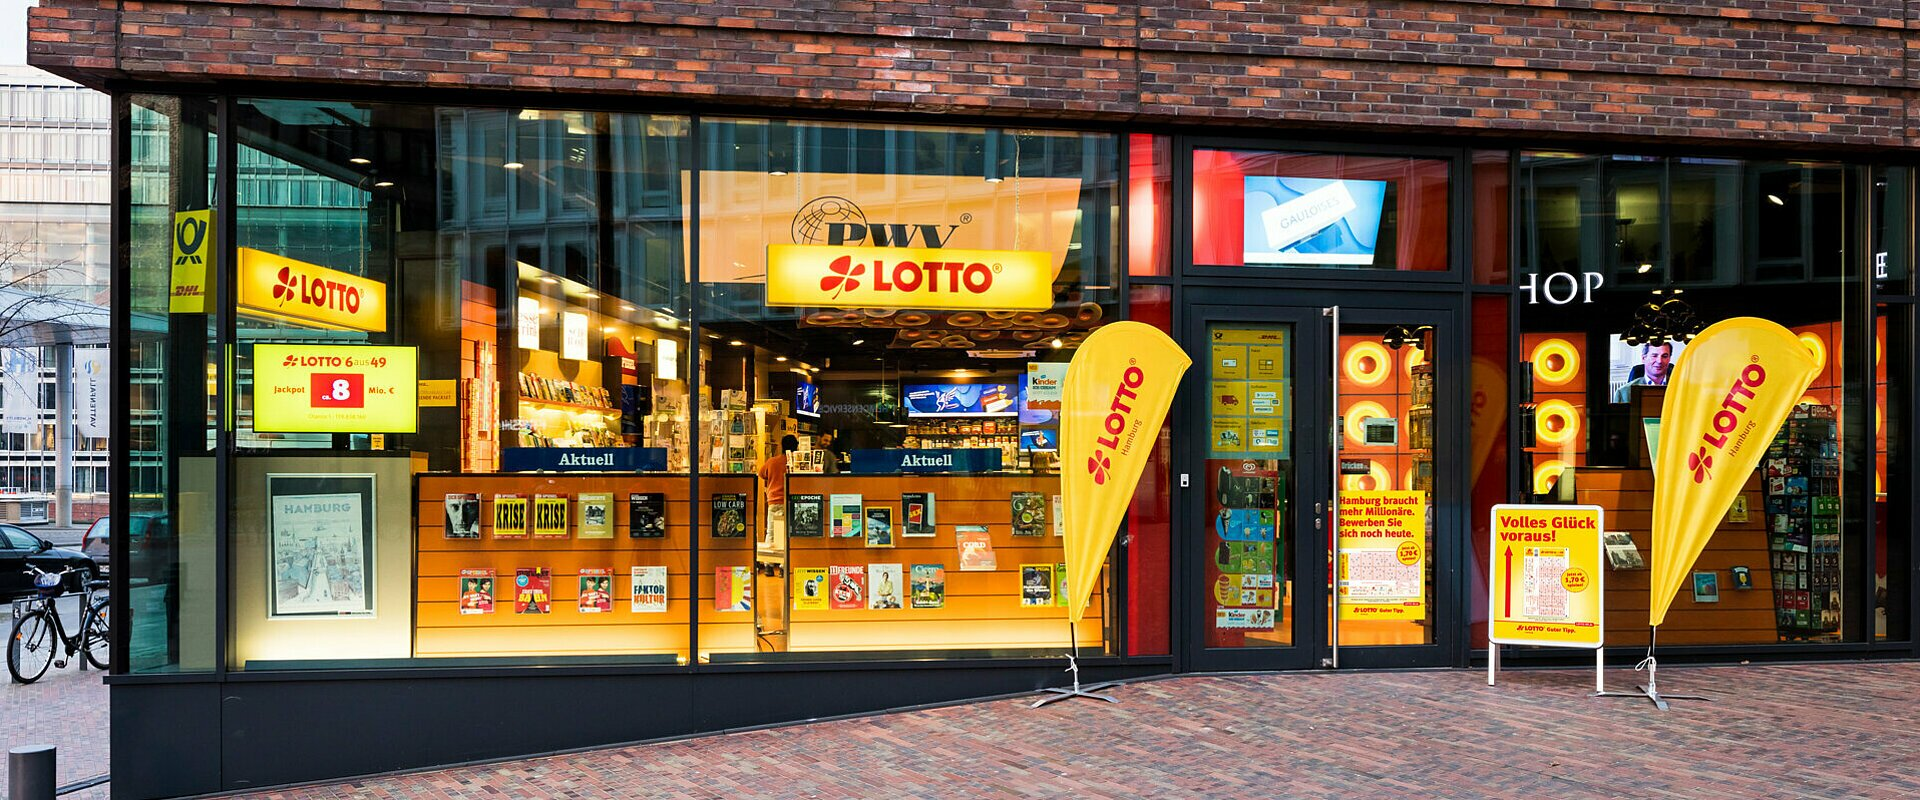 Saint Elmo's, Hamburg, Lotto, Werbeagentur, Cases